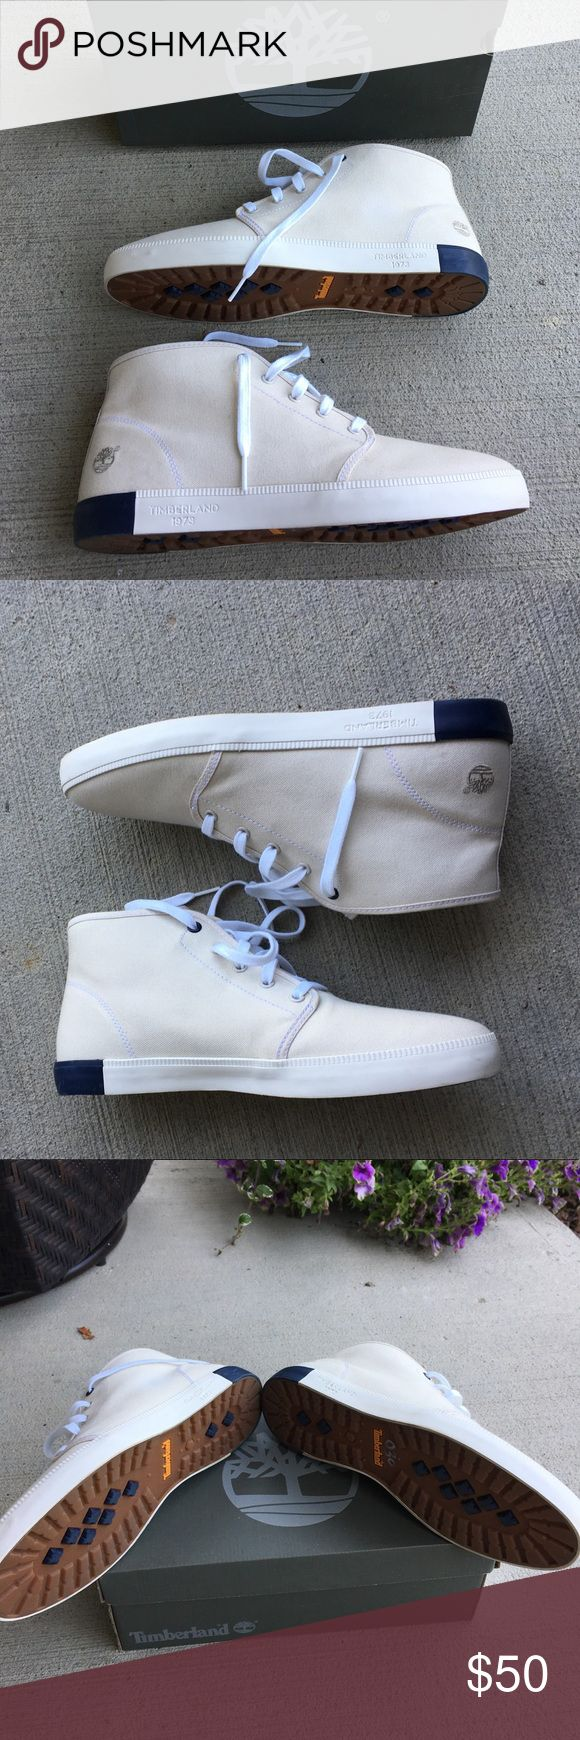 Men's Timberland chukka boots A very great shoe made out of Newport Bay canvas material. Brand new without tags. Ended up buying it and never wearing it. Comes with original box and complimentary tissue paper shoe stuffers inside. Timberland Shoes Chukka Boots